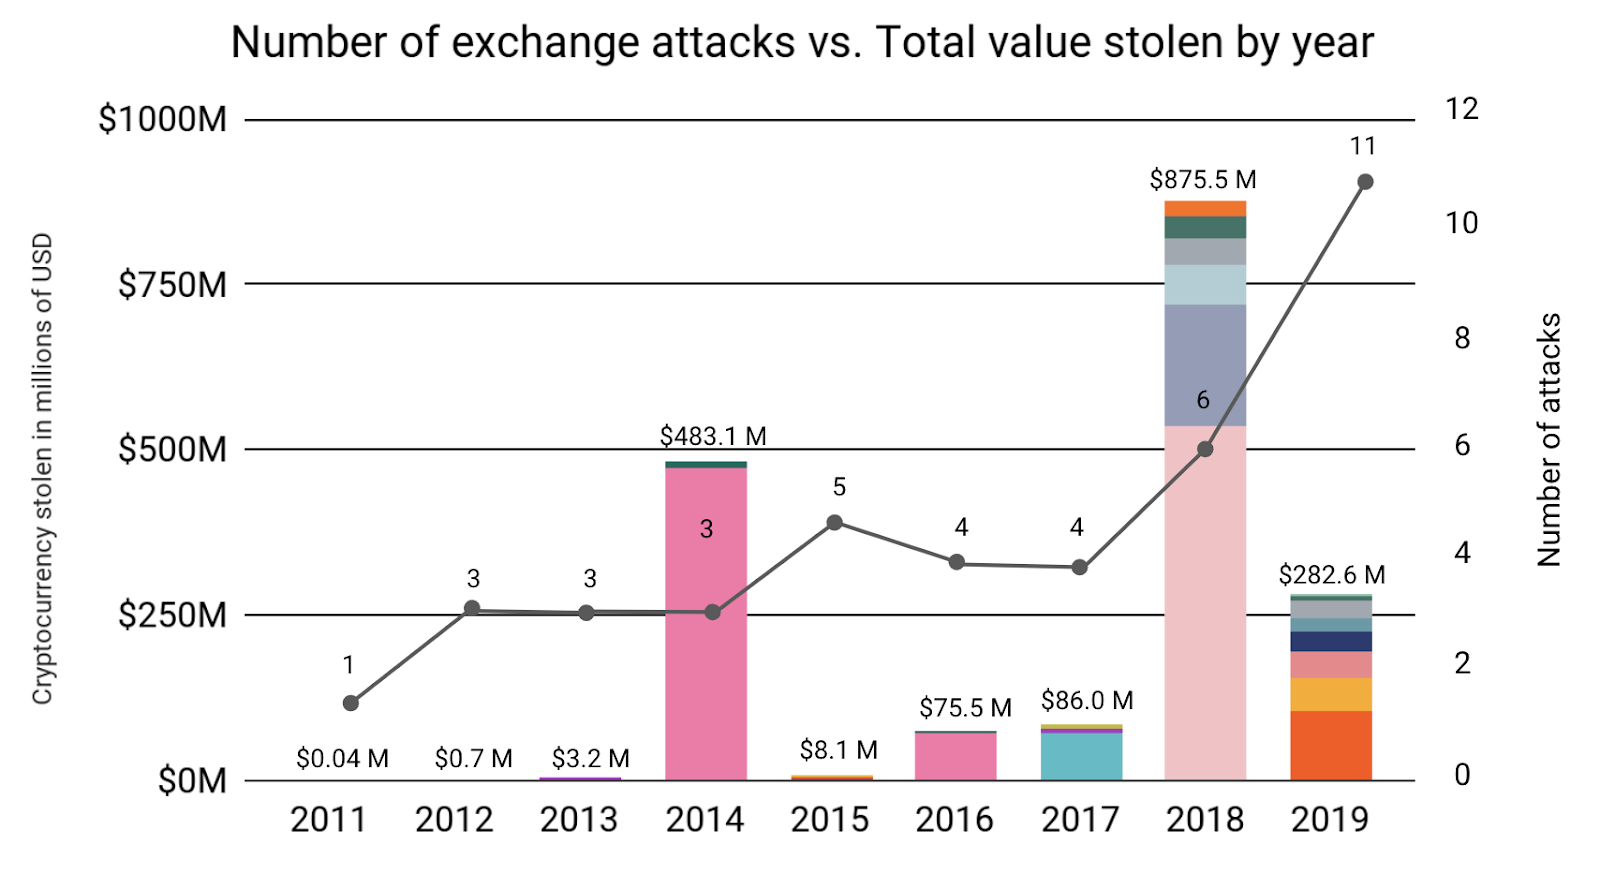 Number of exchange attacks vs. Total value stolen by year